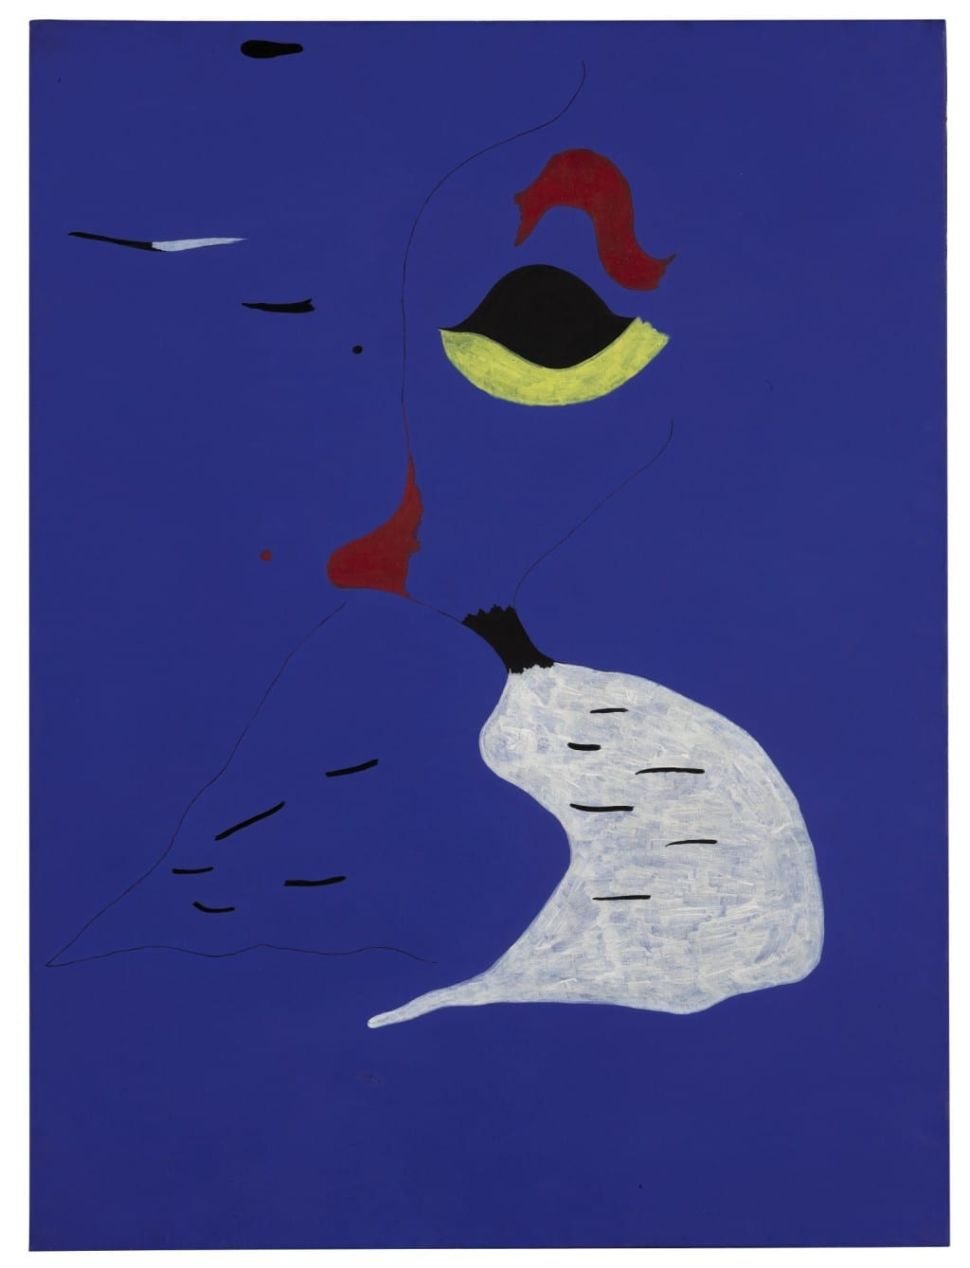 Miró's Abstract 'Woman With Red Hat' Expected to Sell for $37 Million at Sotheby's